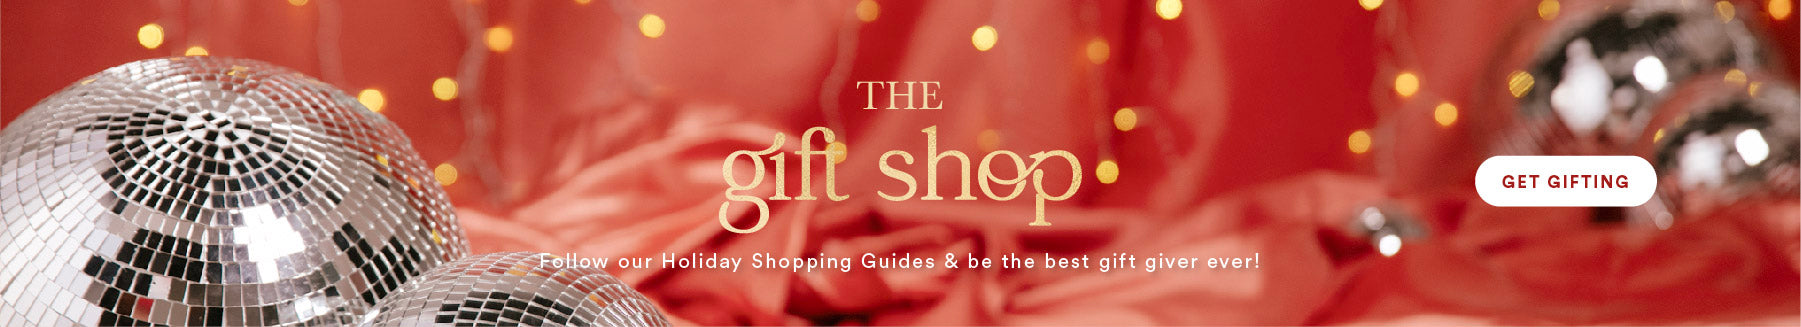 Shop the Valija gift shop, these holidays be the best gift giver ever!